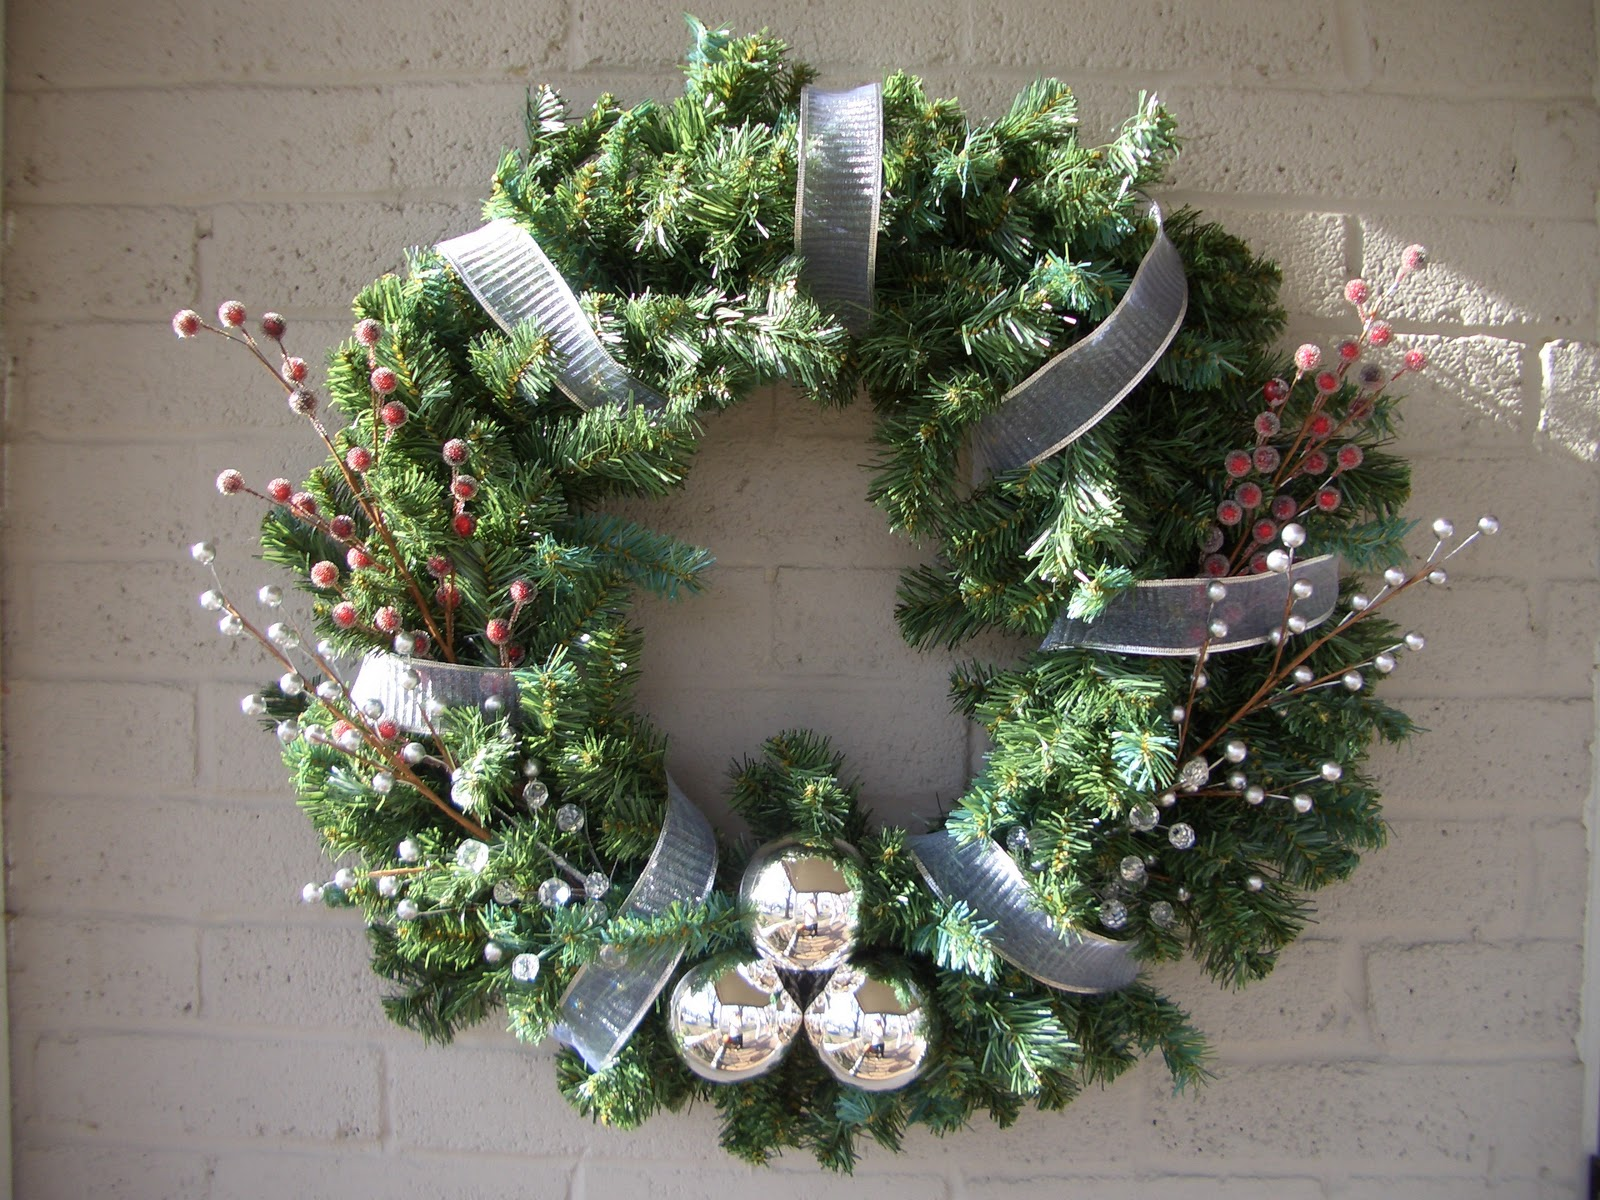 Cool home creations christmas decor 2010 greenery wreath - Deco de noel exterieur a fabriquer ...